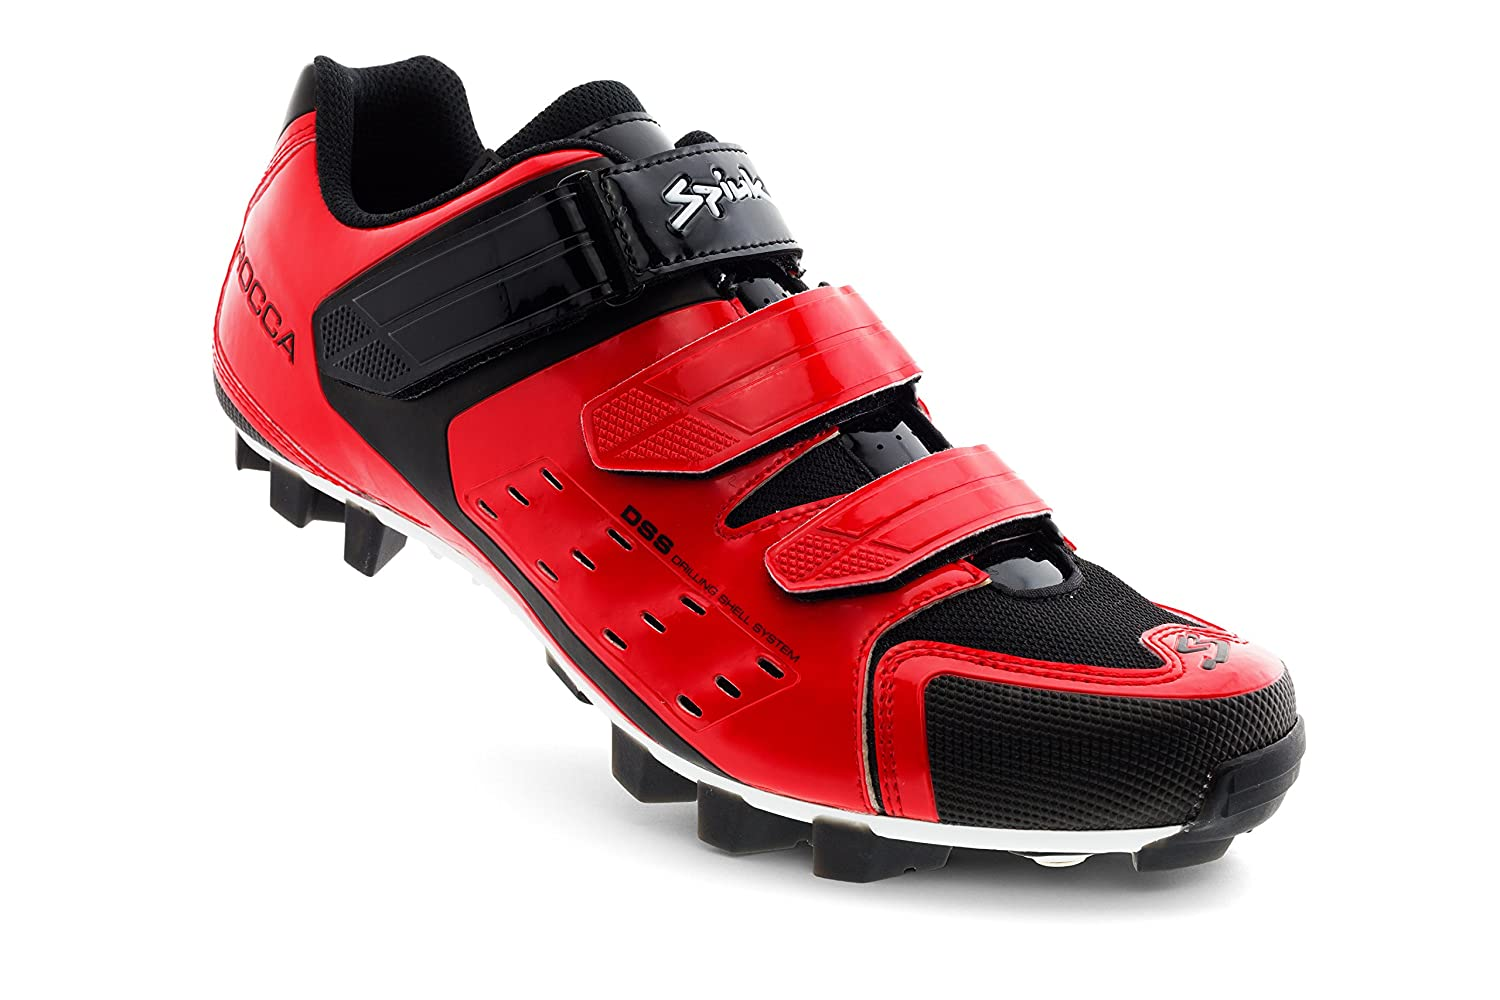 rot Spiuk Rocca MTB Schuh, Unisex